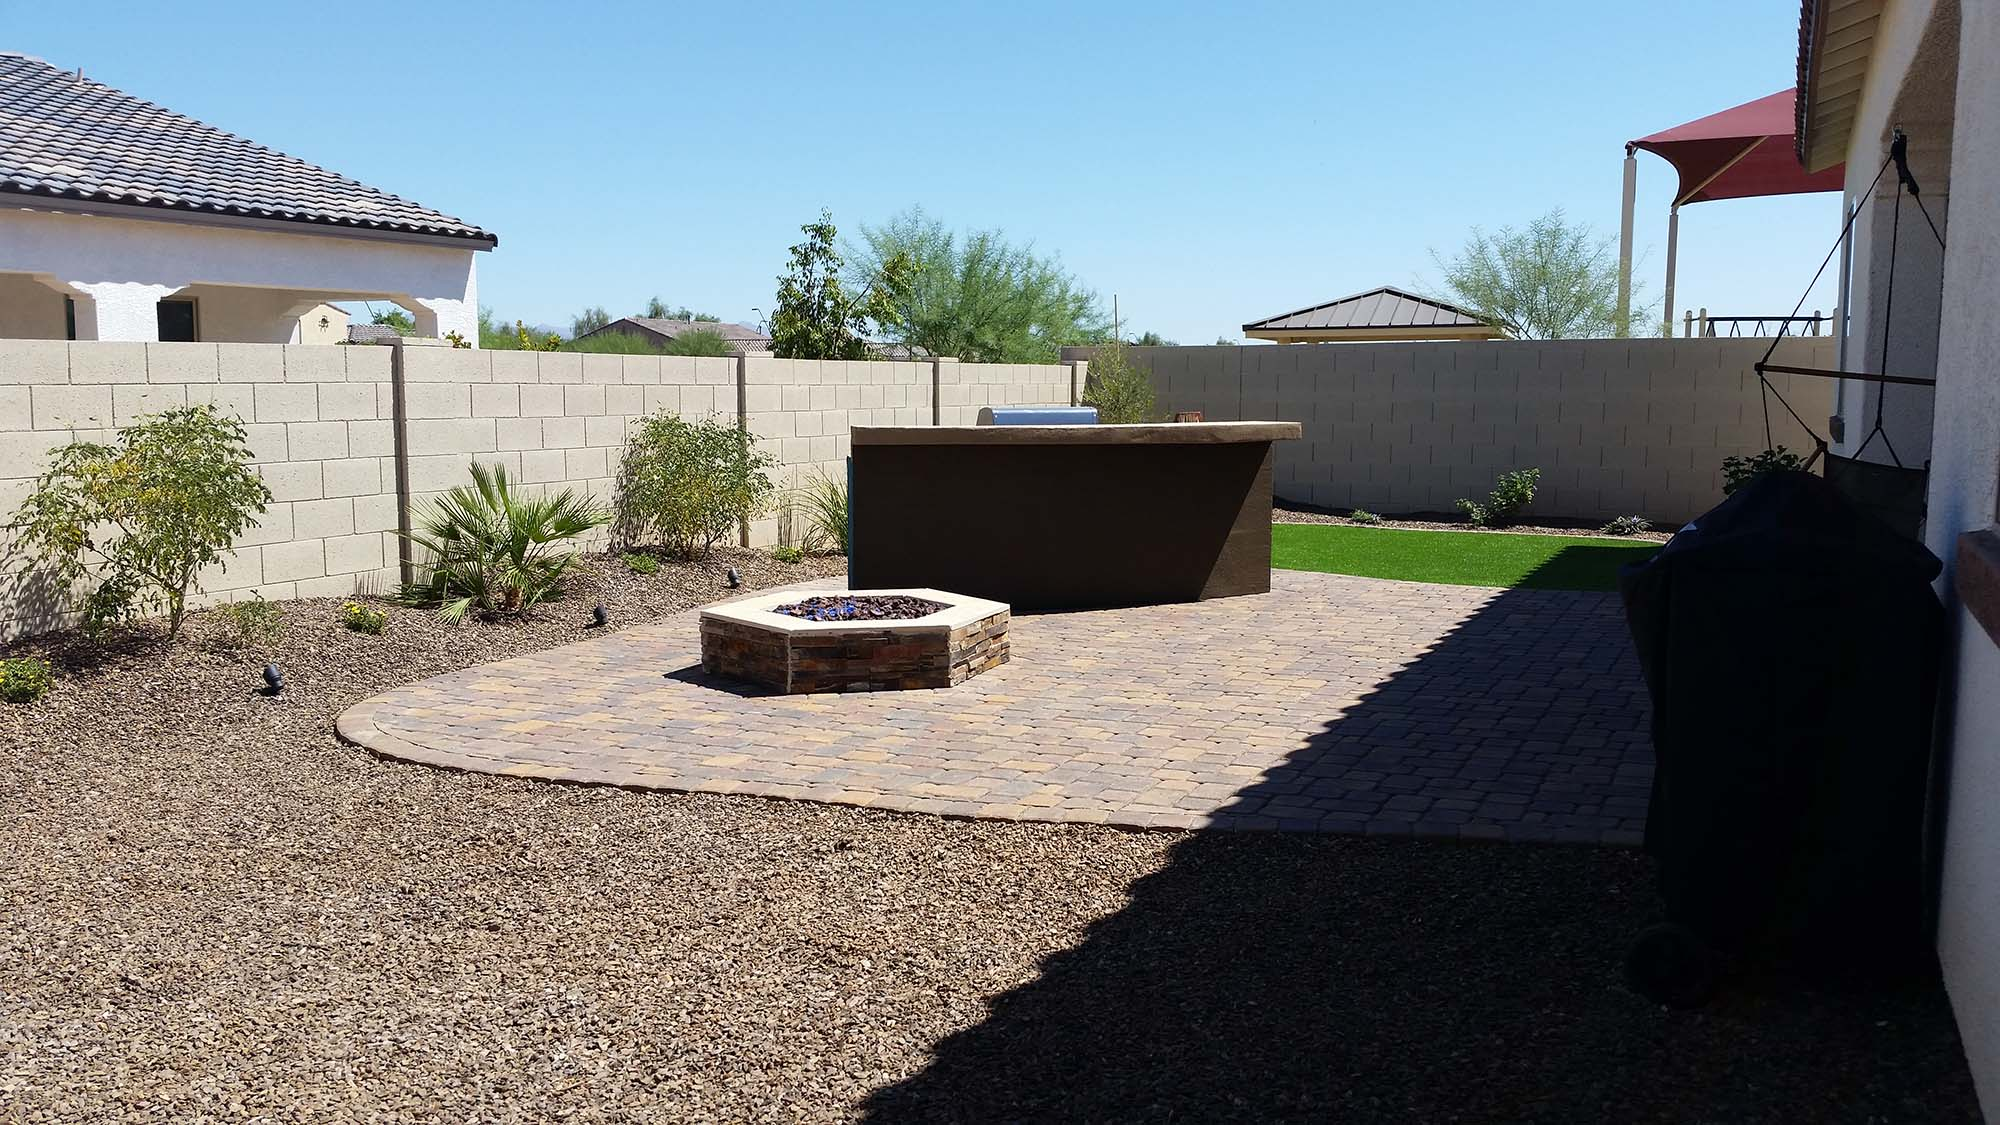 Minimalist Low Fire Pit on Amusing Concrete in Backyard Landscape with Nice Tile Fence